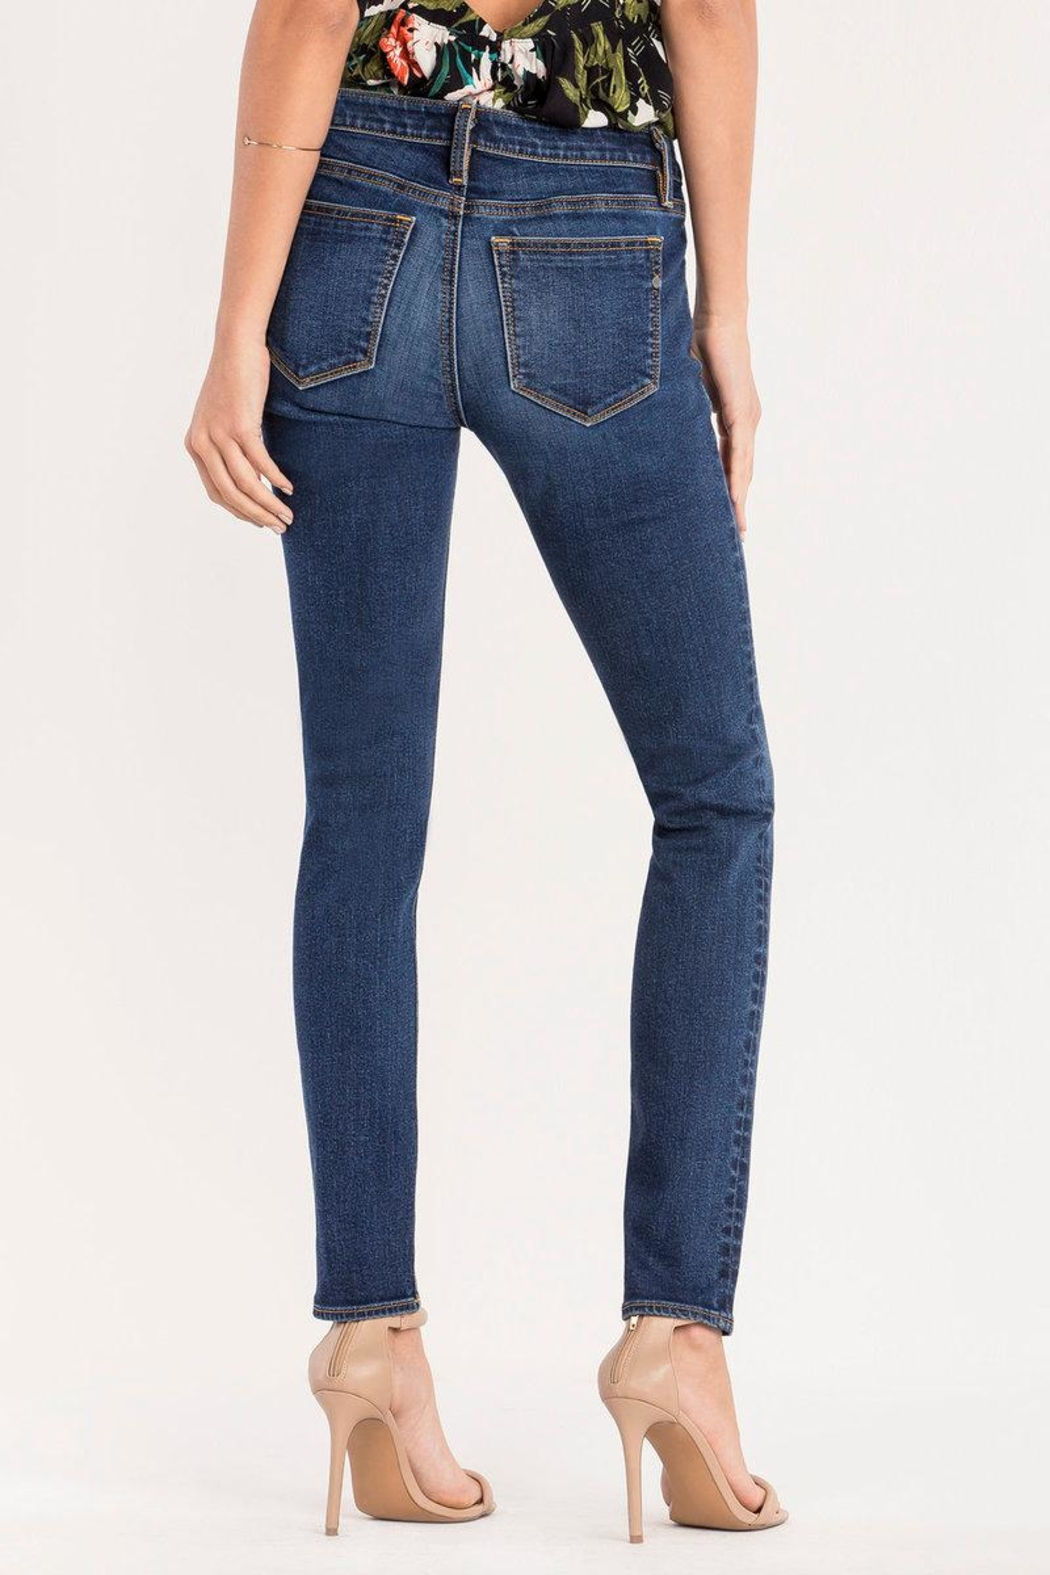 Miss Me Essential Midrise Skinny Jean - Front Full Image